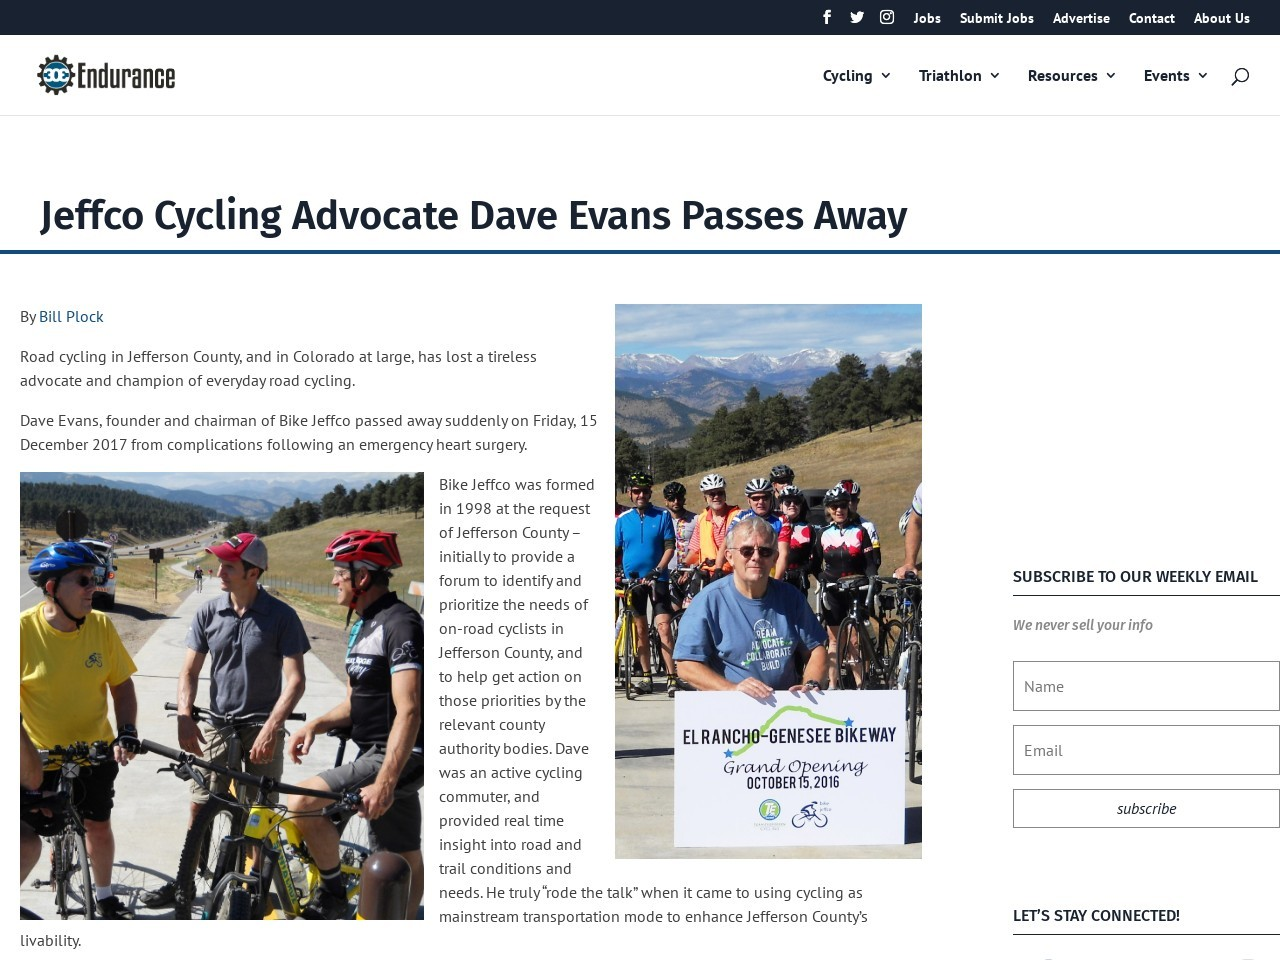 Jeffco Cycling Advocate Dave Evans Passes Away